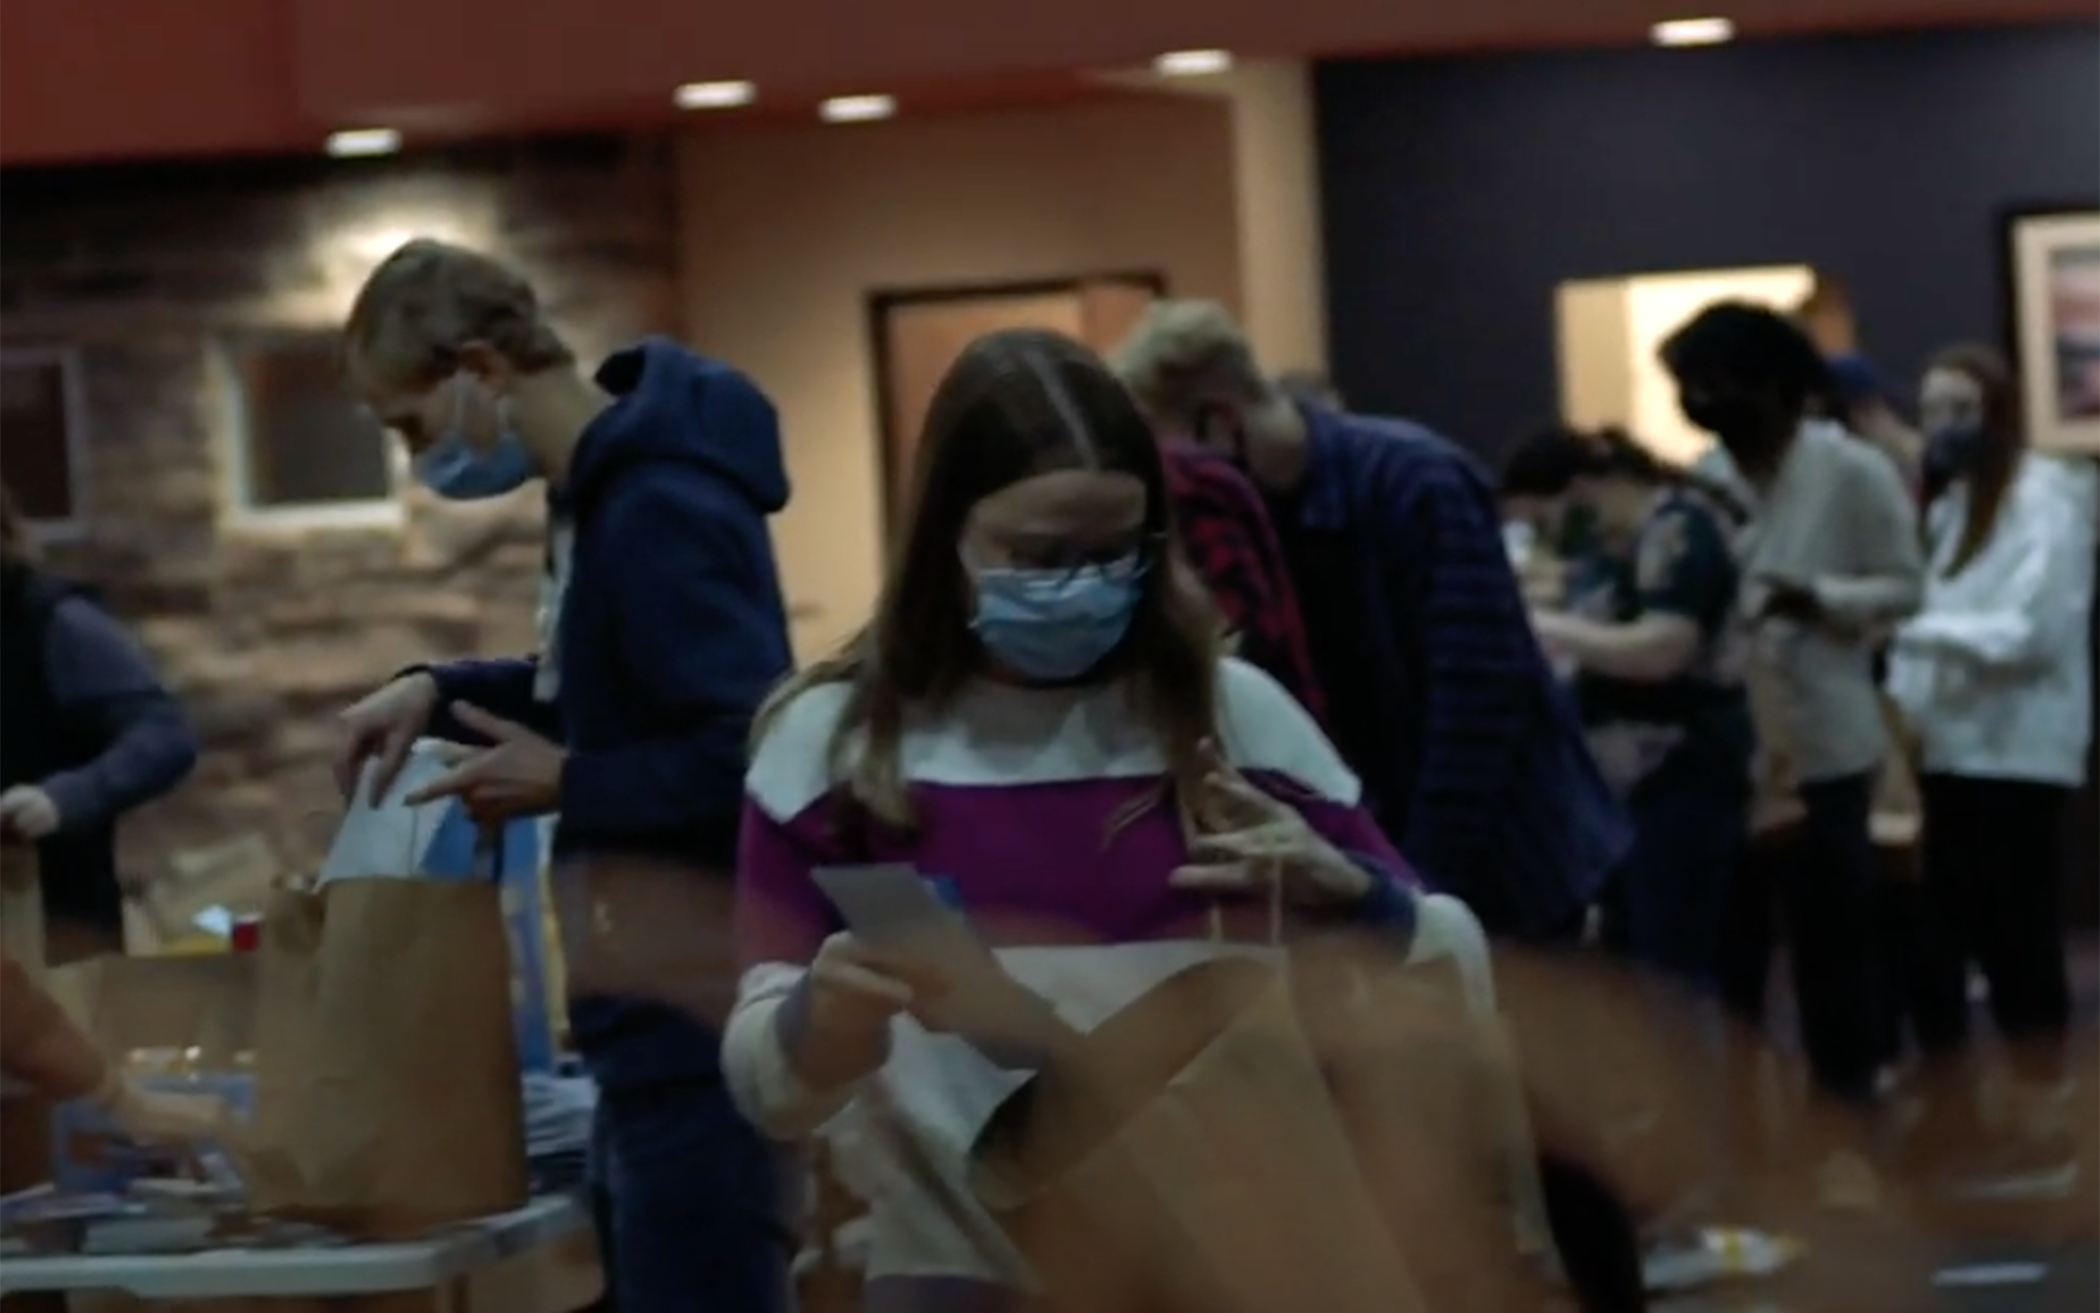 Campus Ministries Connect Amid COVID Pandemic